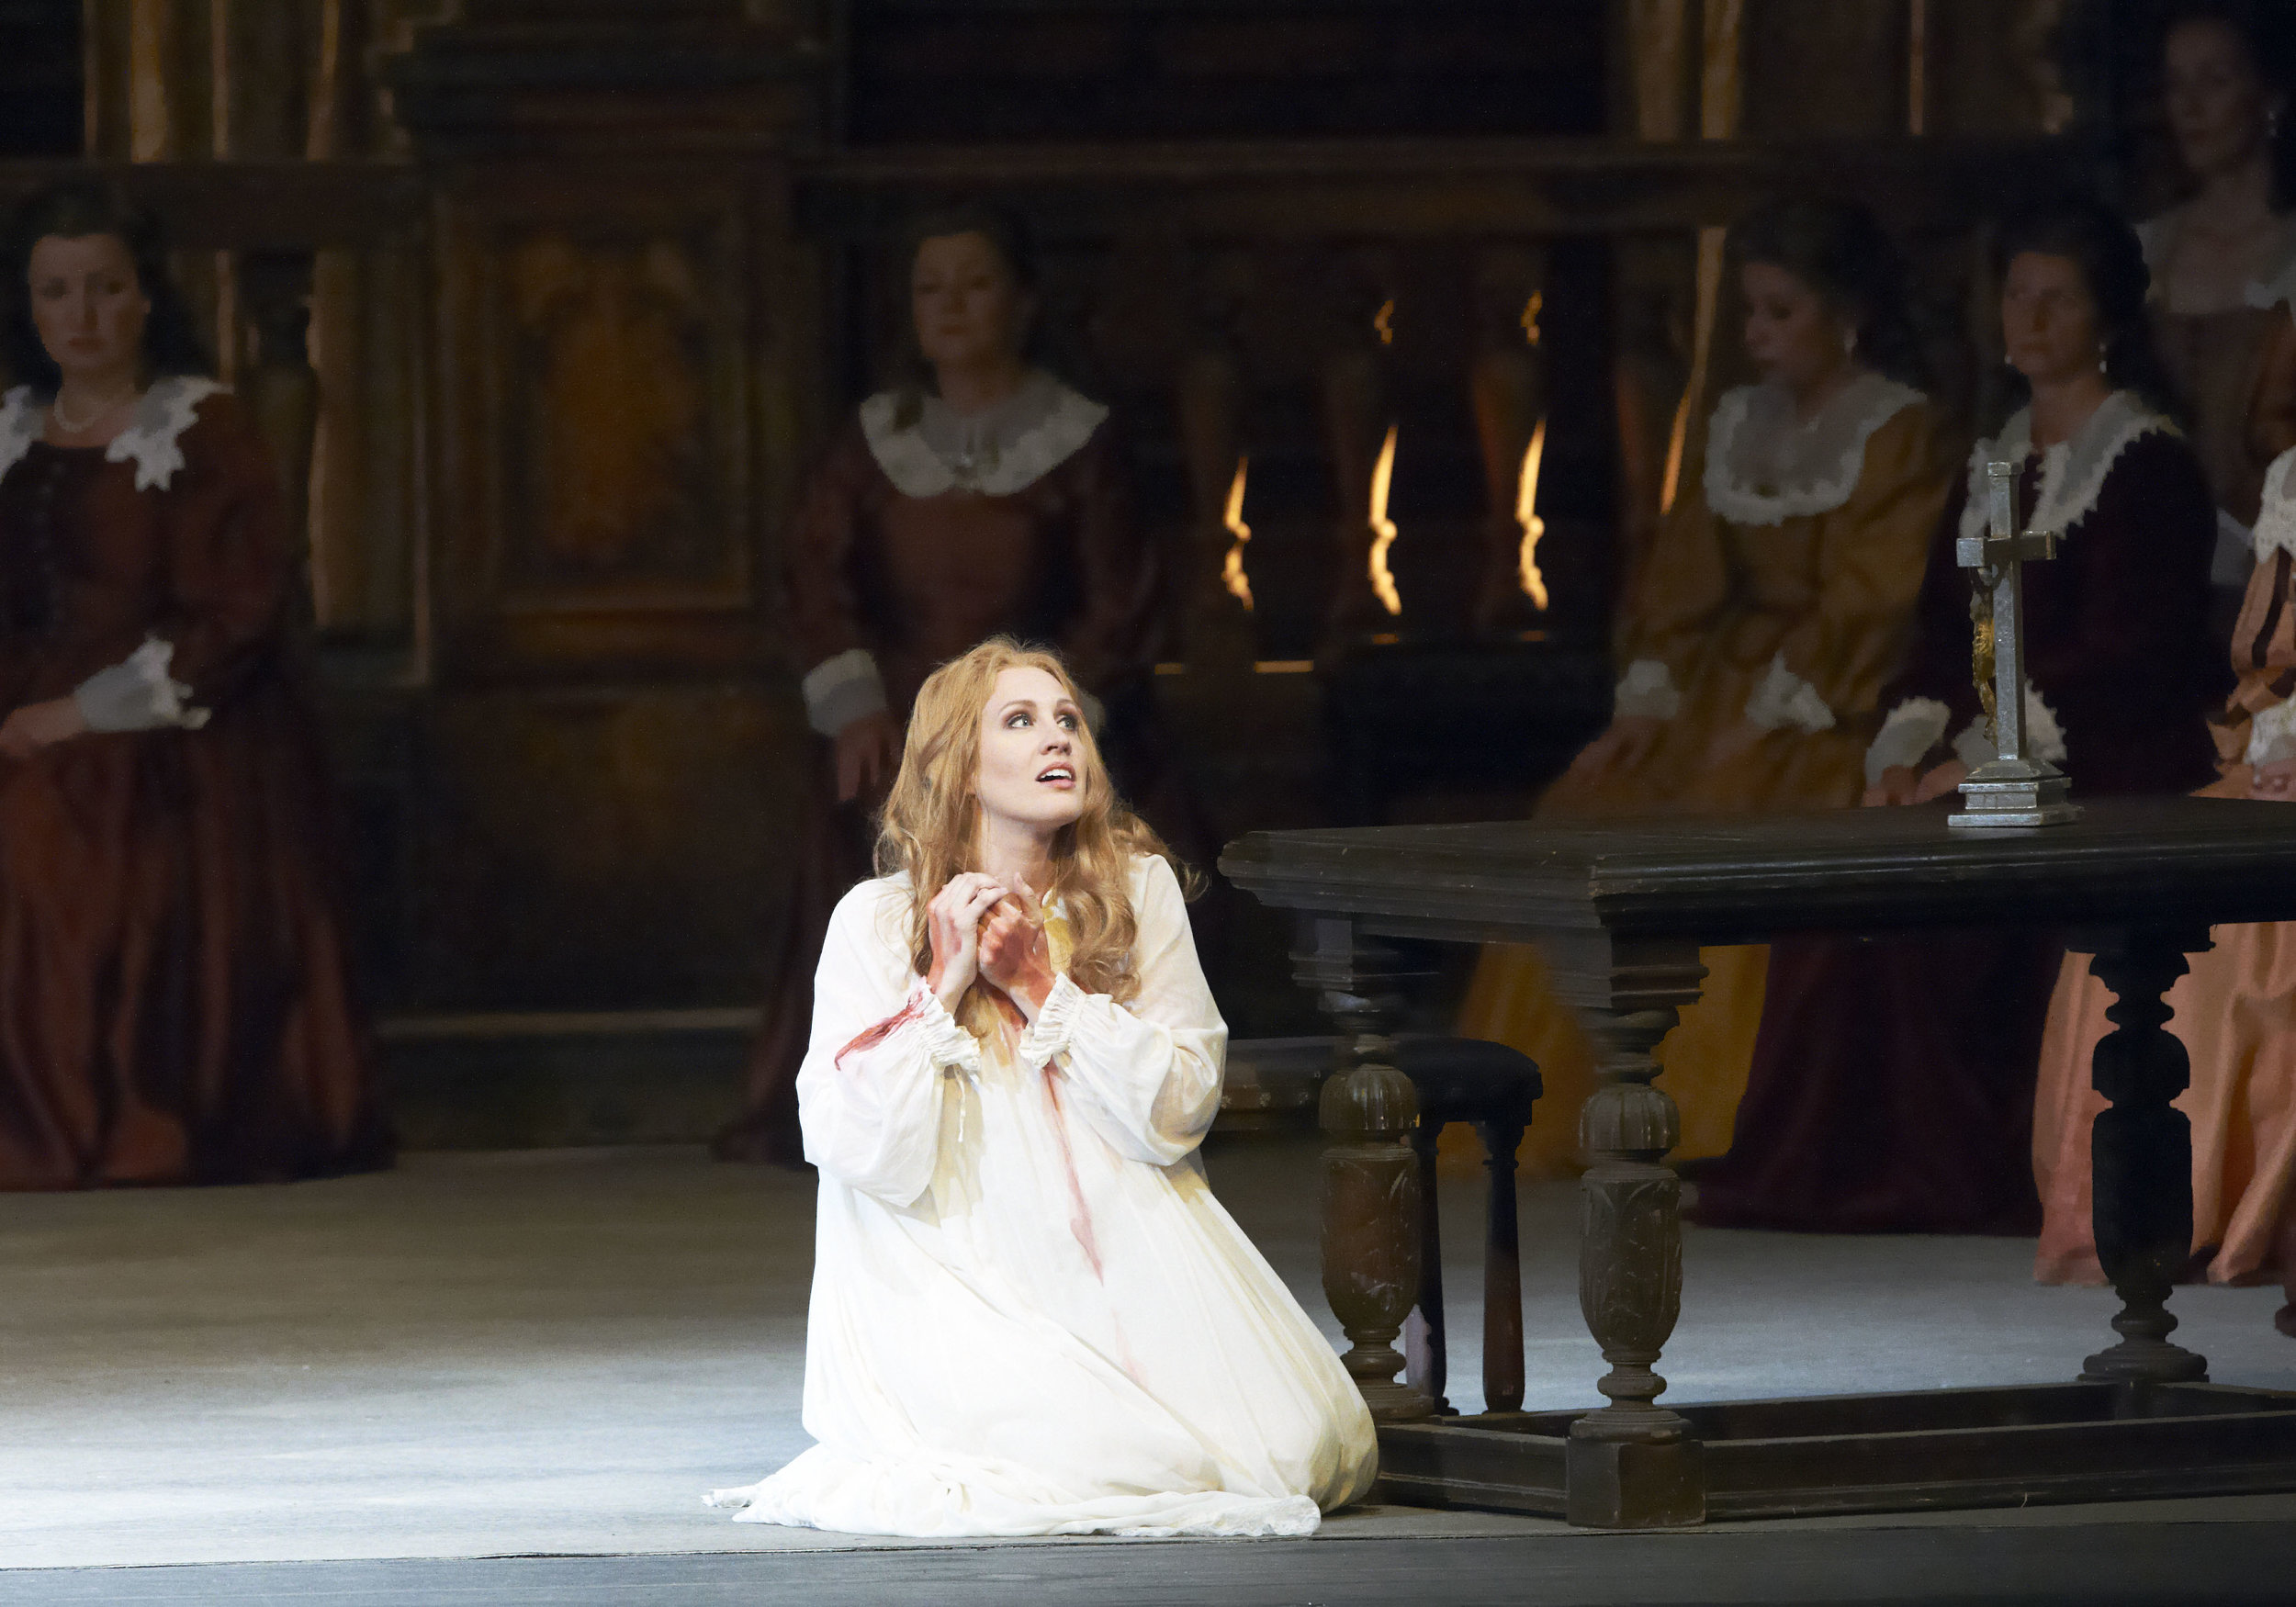 BWW Interview: Brenda Rae of LUCIA DI LAMMERMOOR at Santa Fe Opera